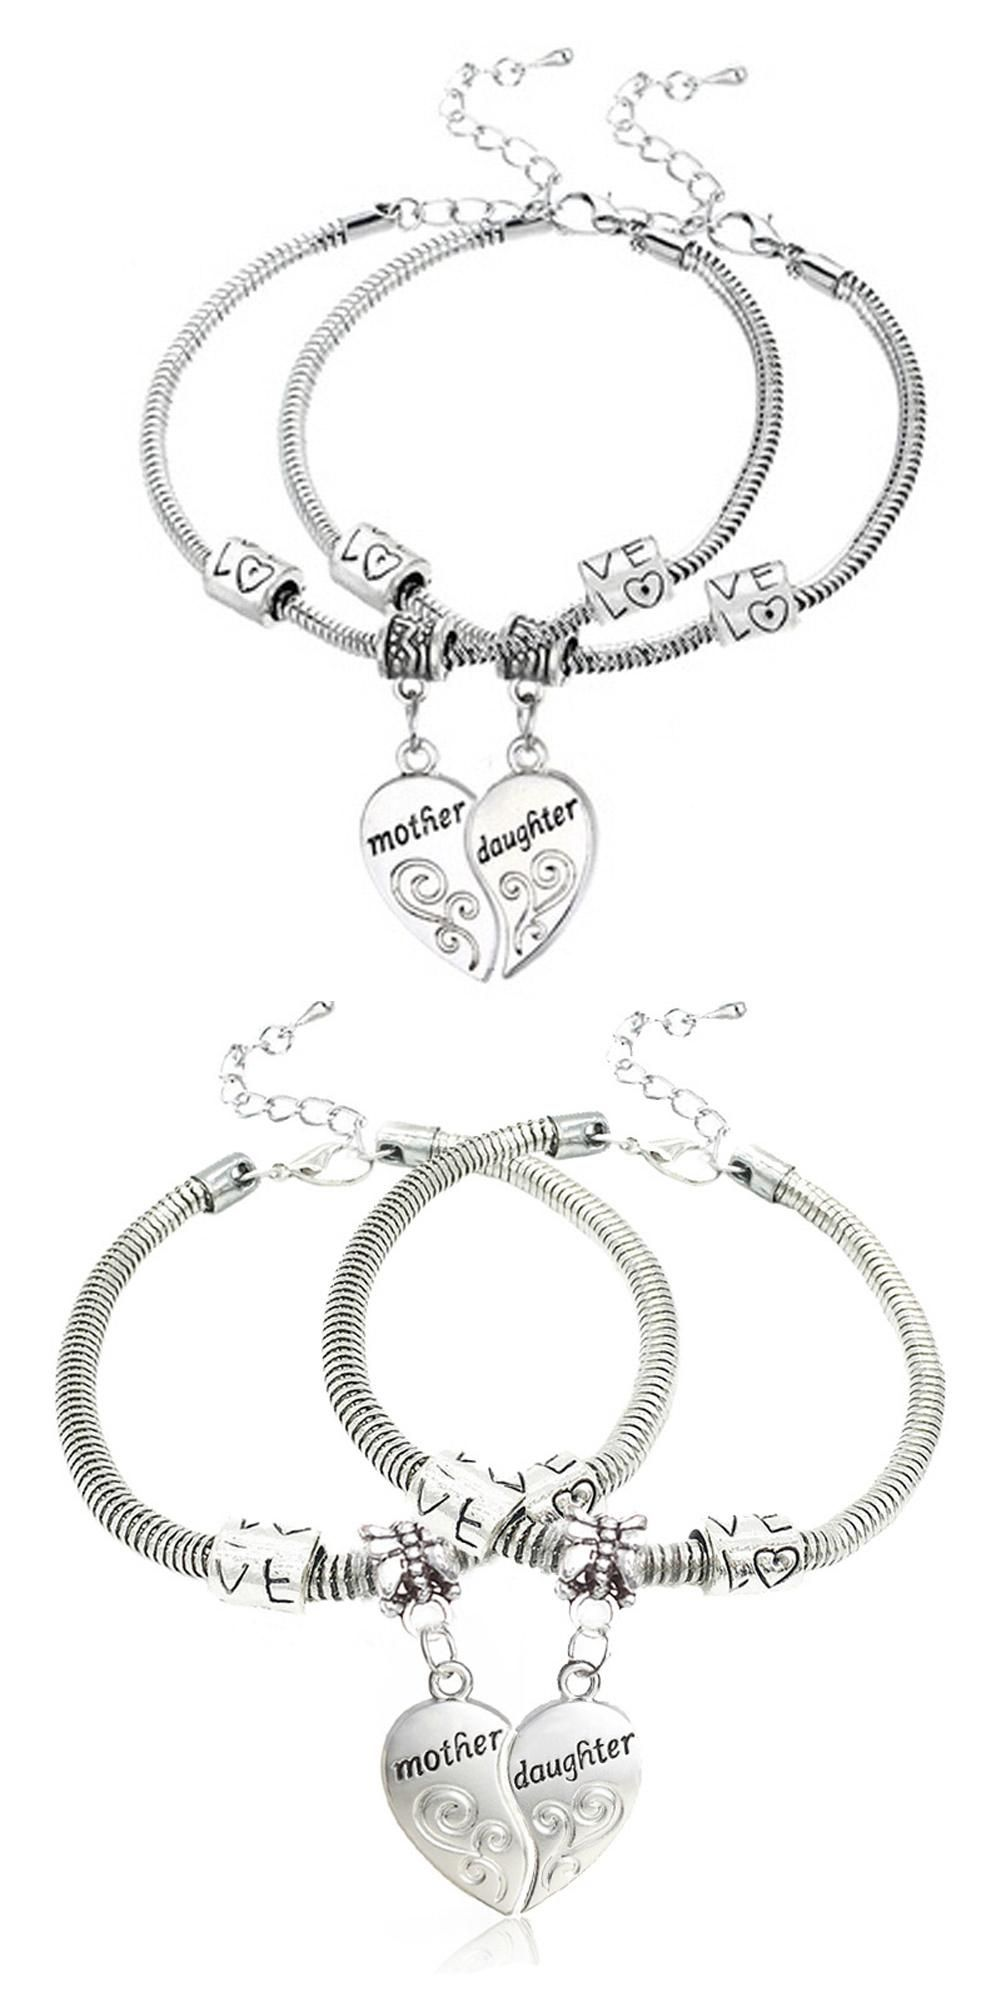 Visit to buy pcs silver plated mother daughter broken heart